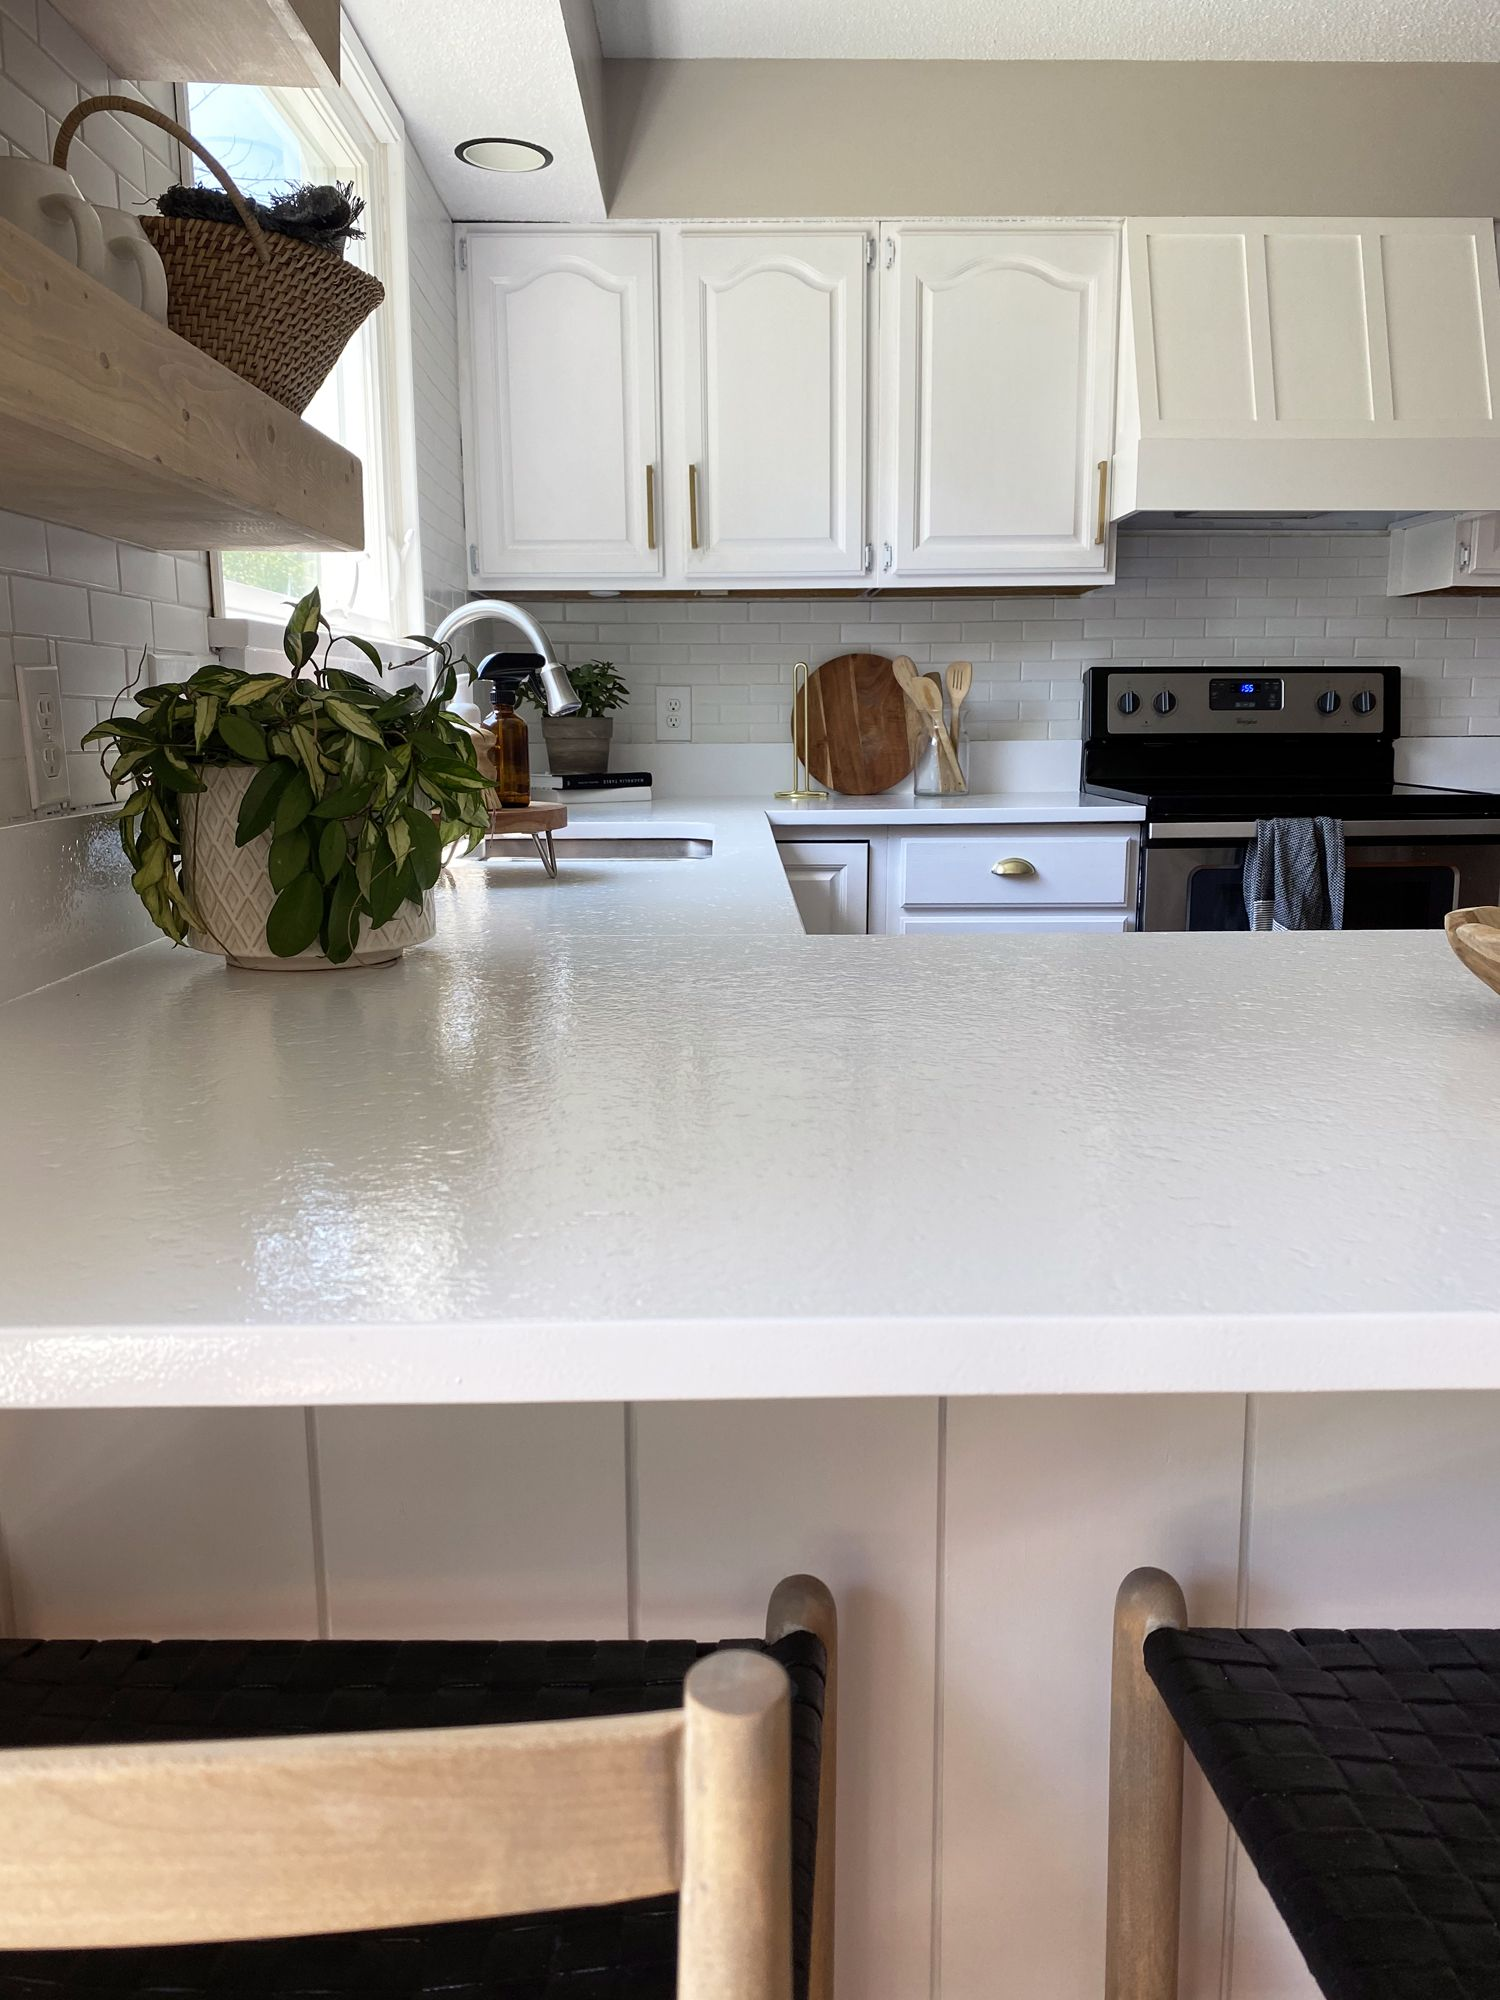 Appliance Epoxy Kitchen Counter Makeover Full Hearted Home In 2020 Countertop Makeover Kitchen Kitchen Counter